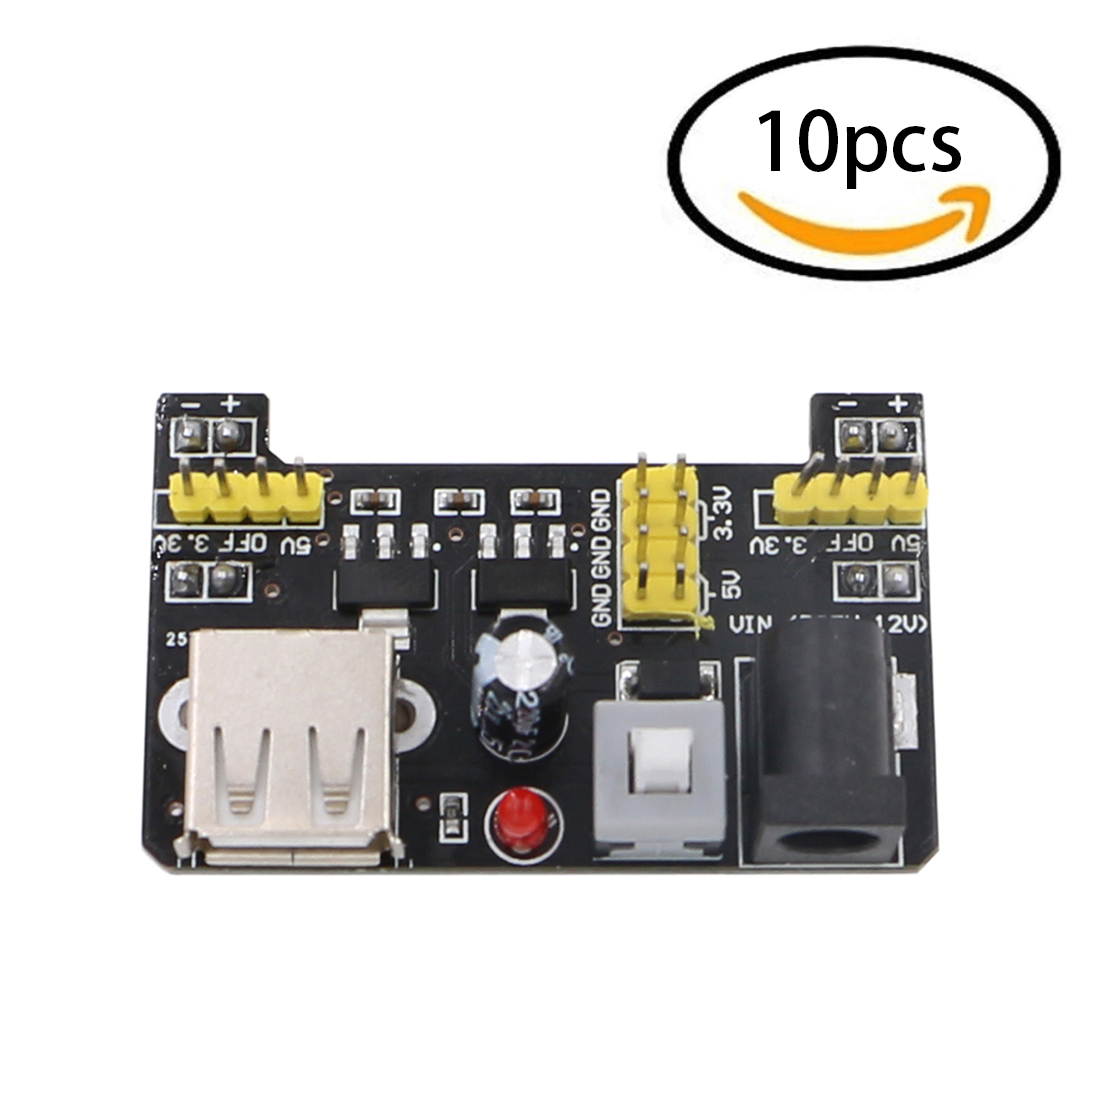 10PCS Breadboard Power Module Adapter Shield 3.3V/5V For Arduino